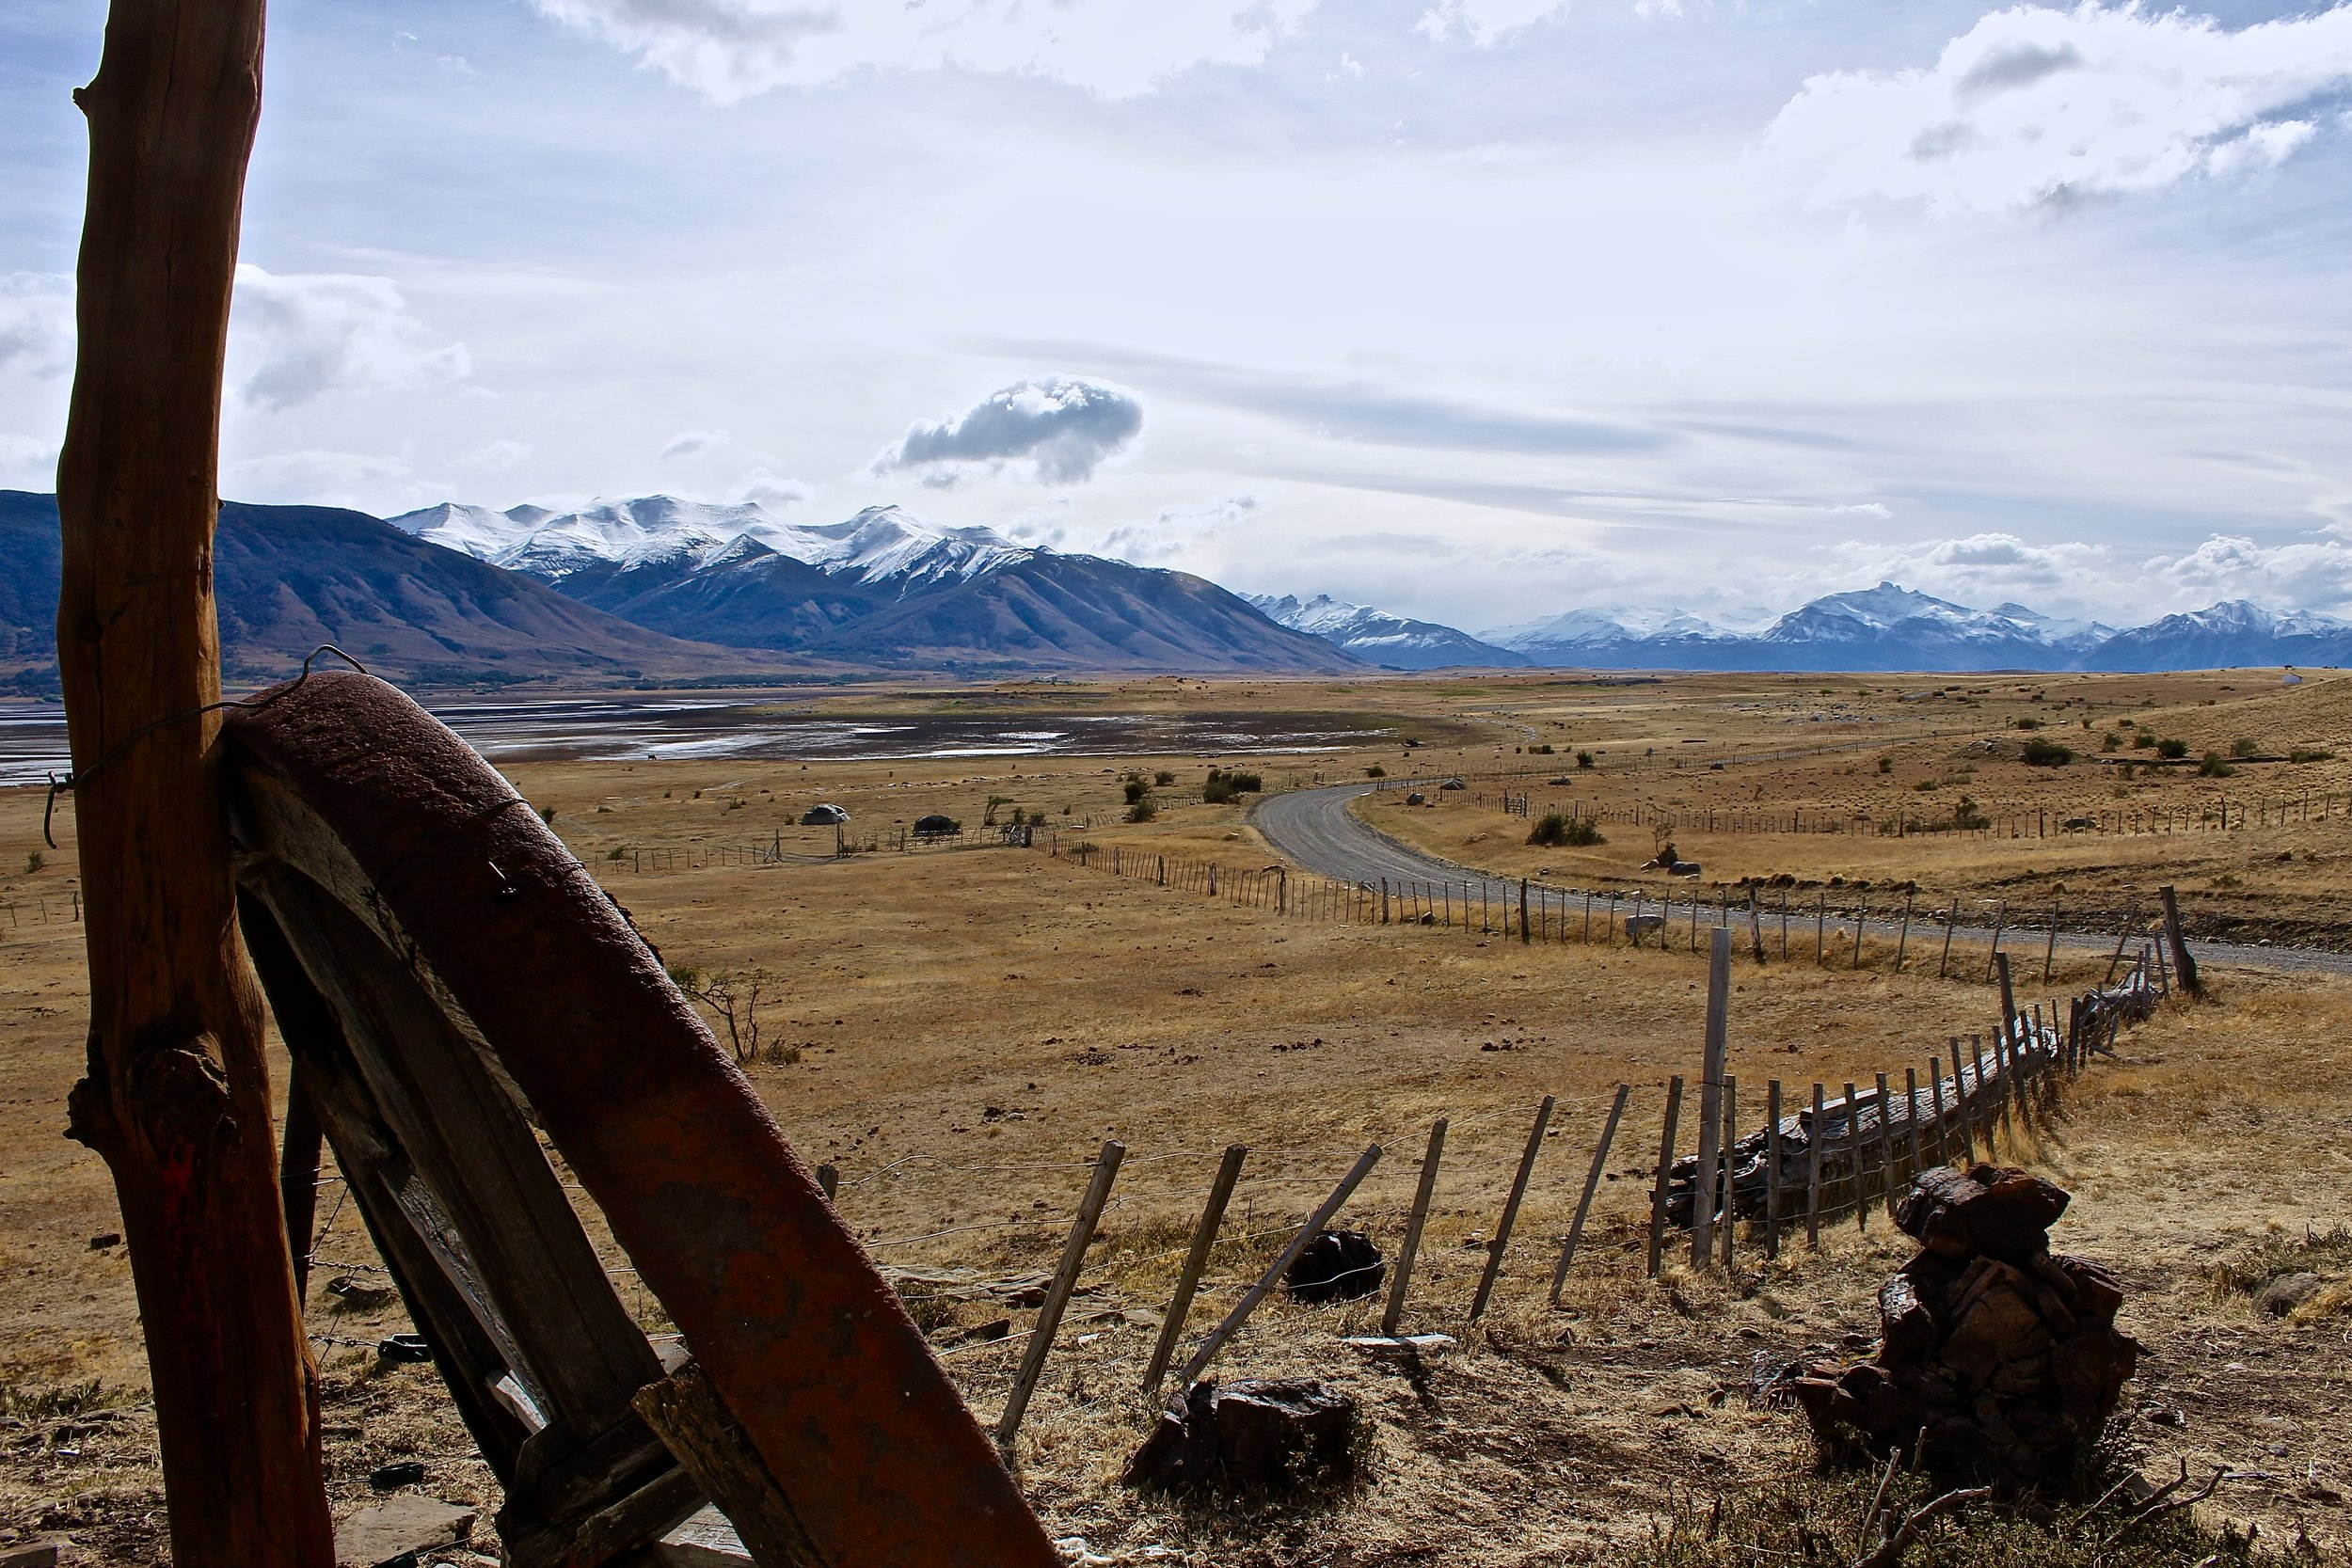 The ranch,  Rio Mitre , was nestled in the mountains, in such a serene setting. About an hour's drive from Calafate.